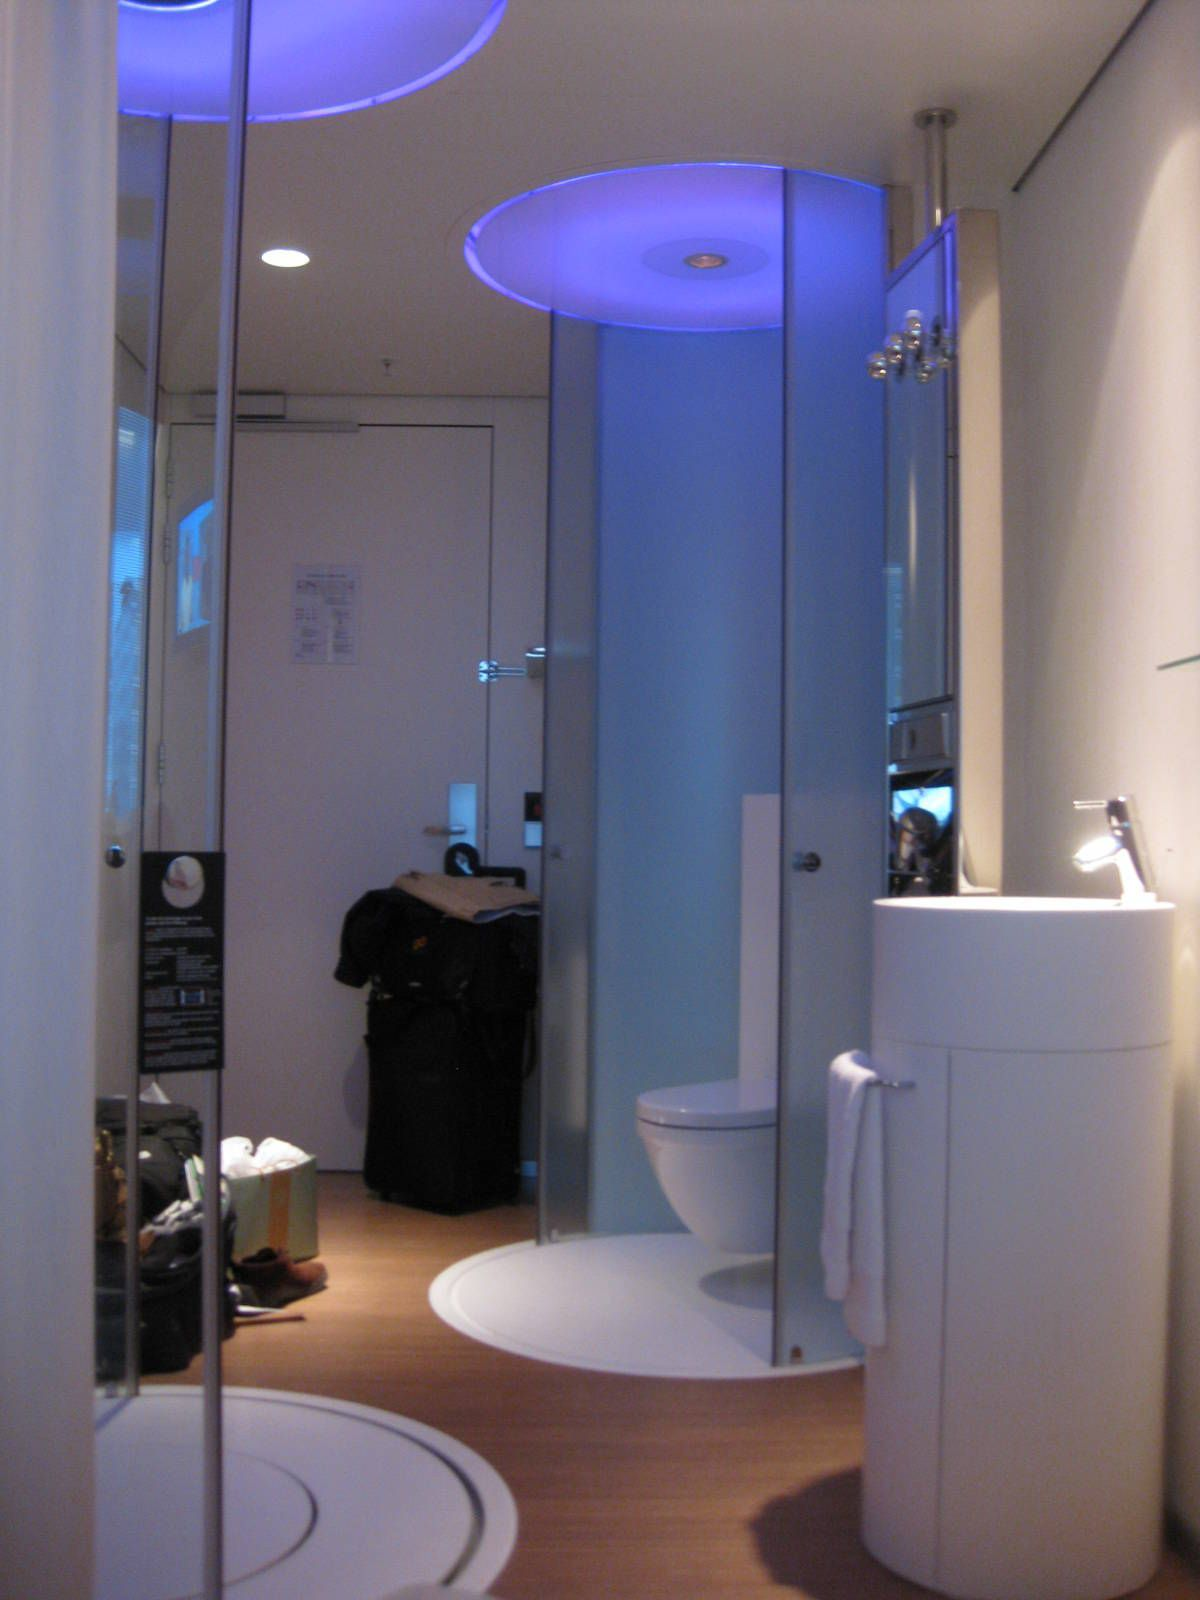 Bathroom designs for small spaces blue - The Un Bathroom At Citizenm Hotel In Amsterdam